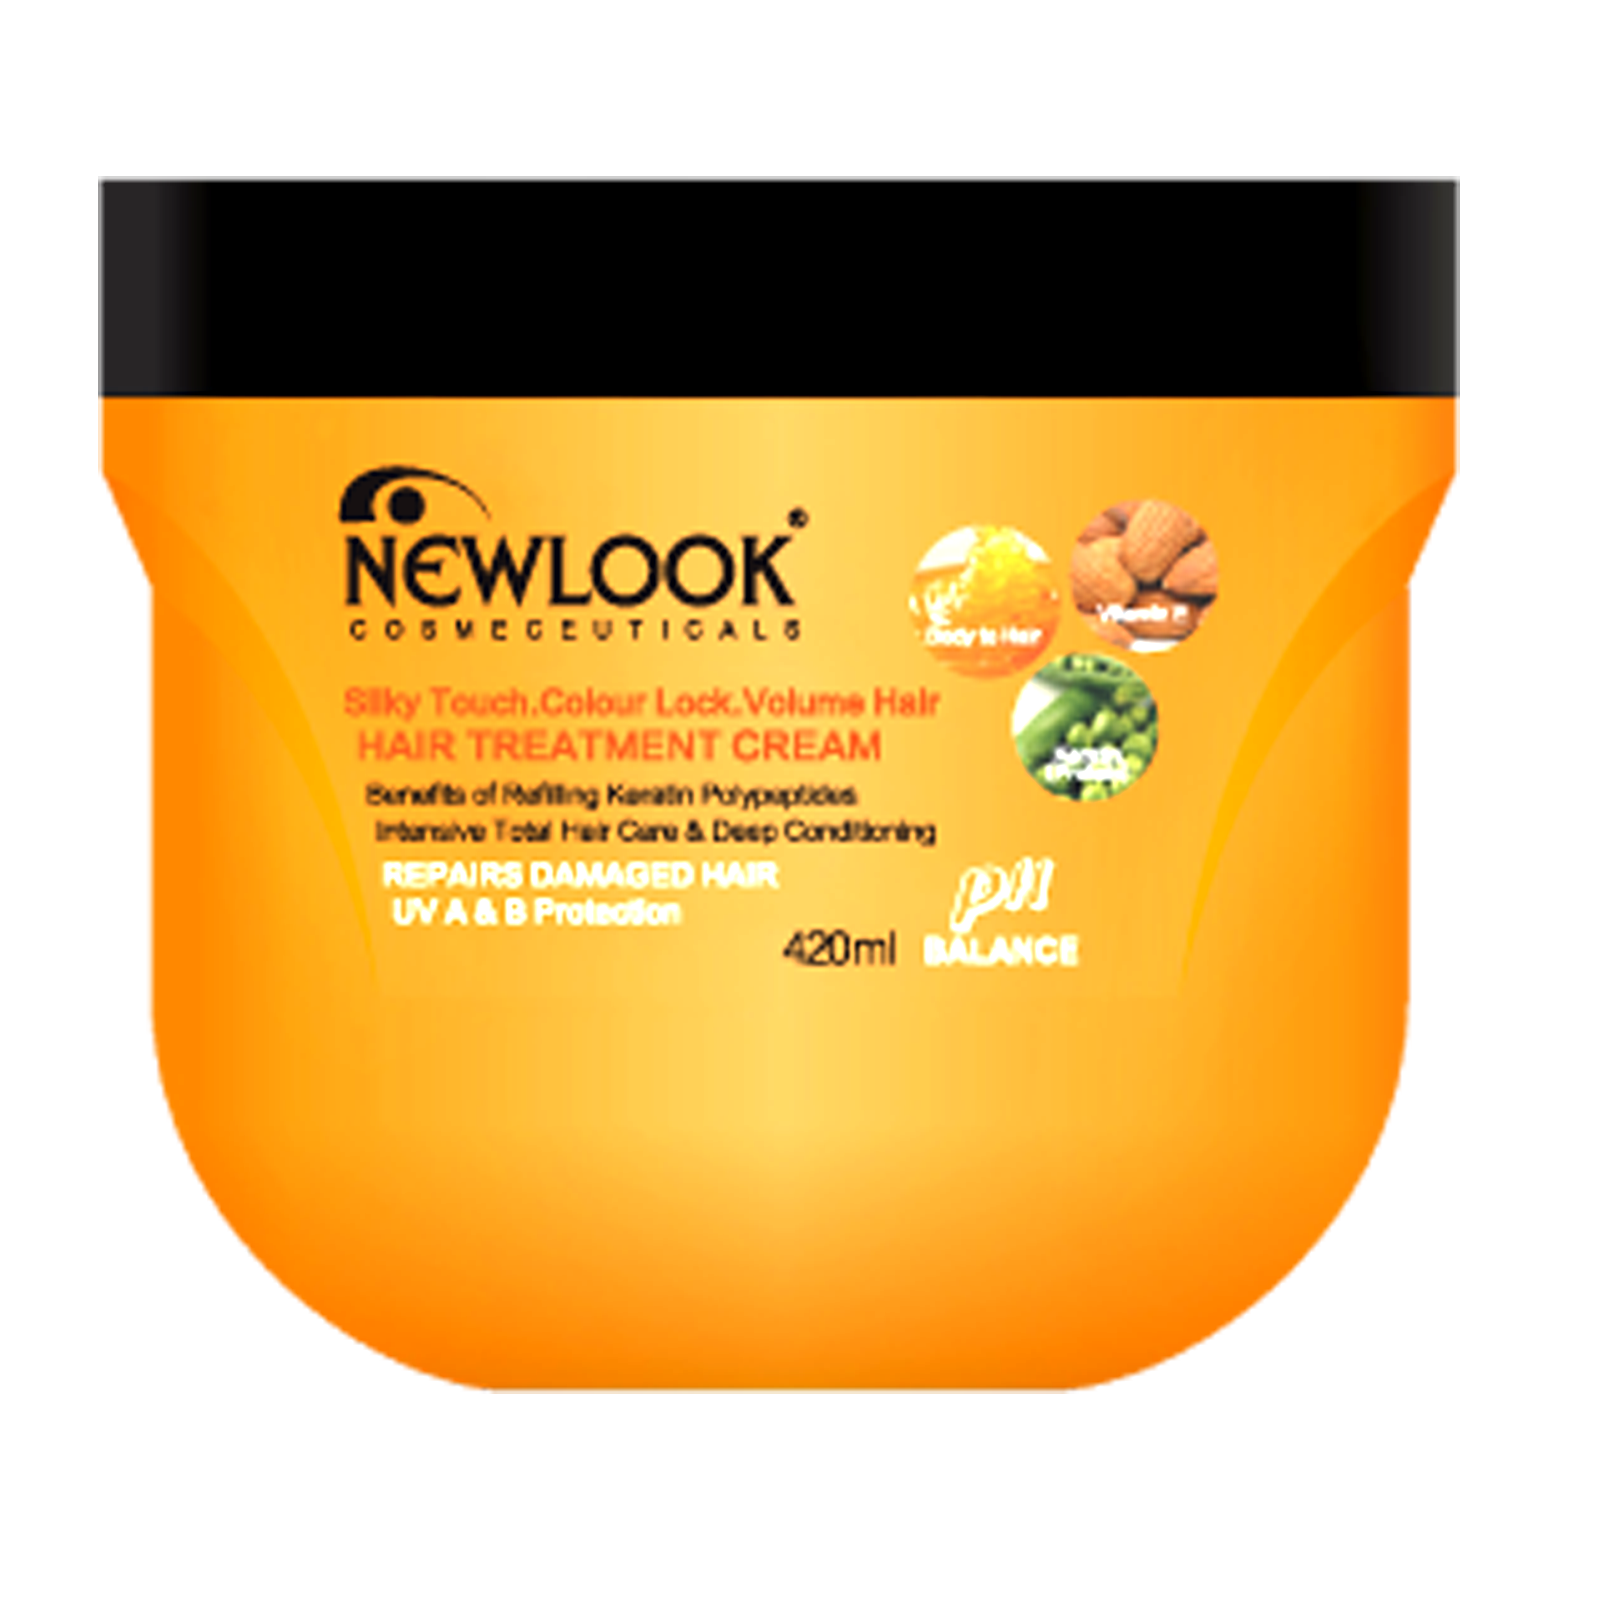 Newlook Hair Treatment Cream - 420 ml